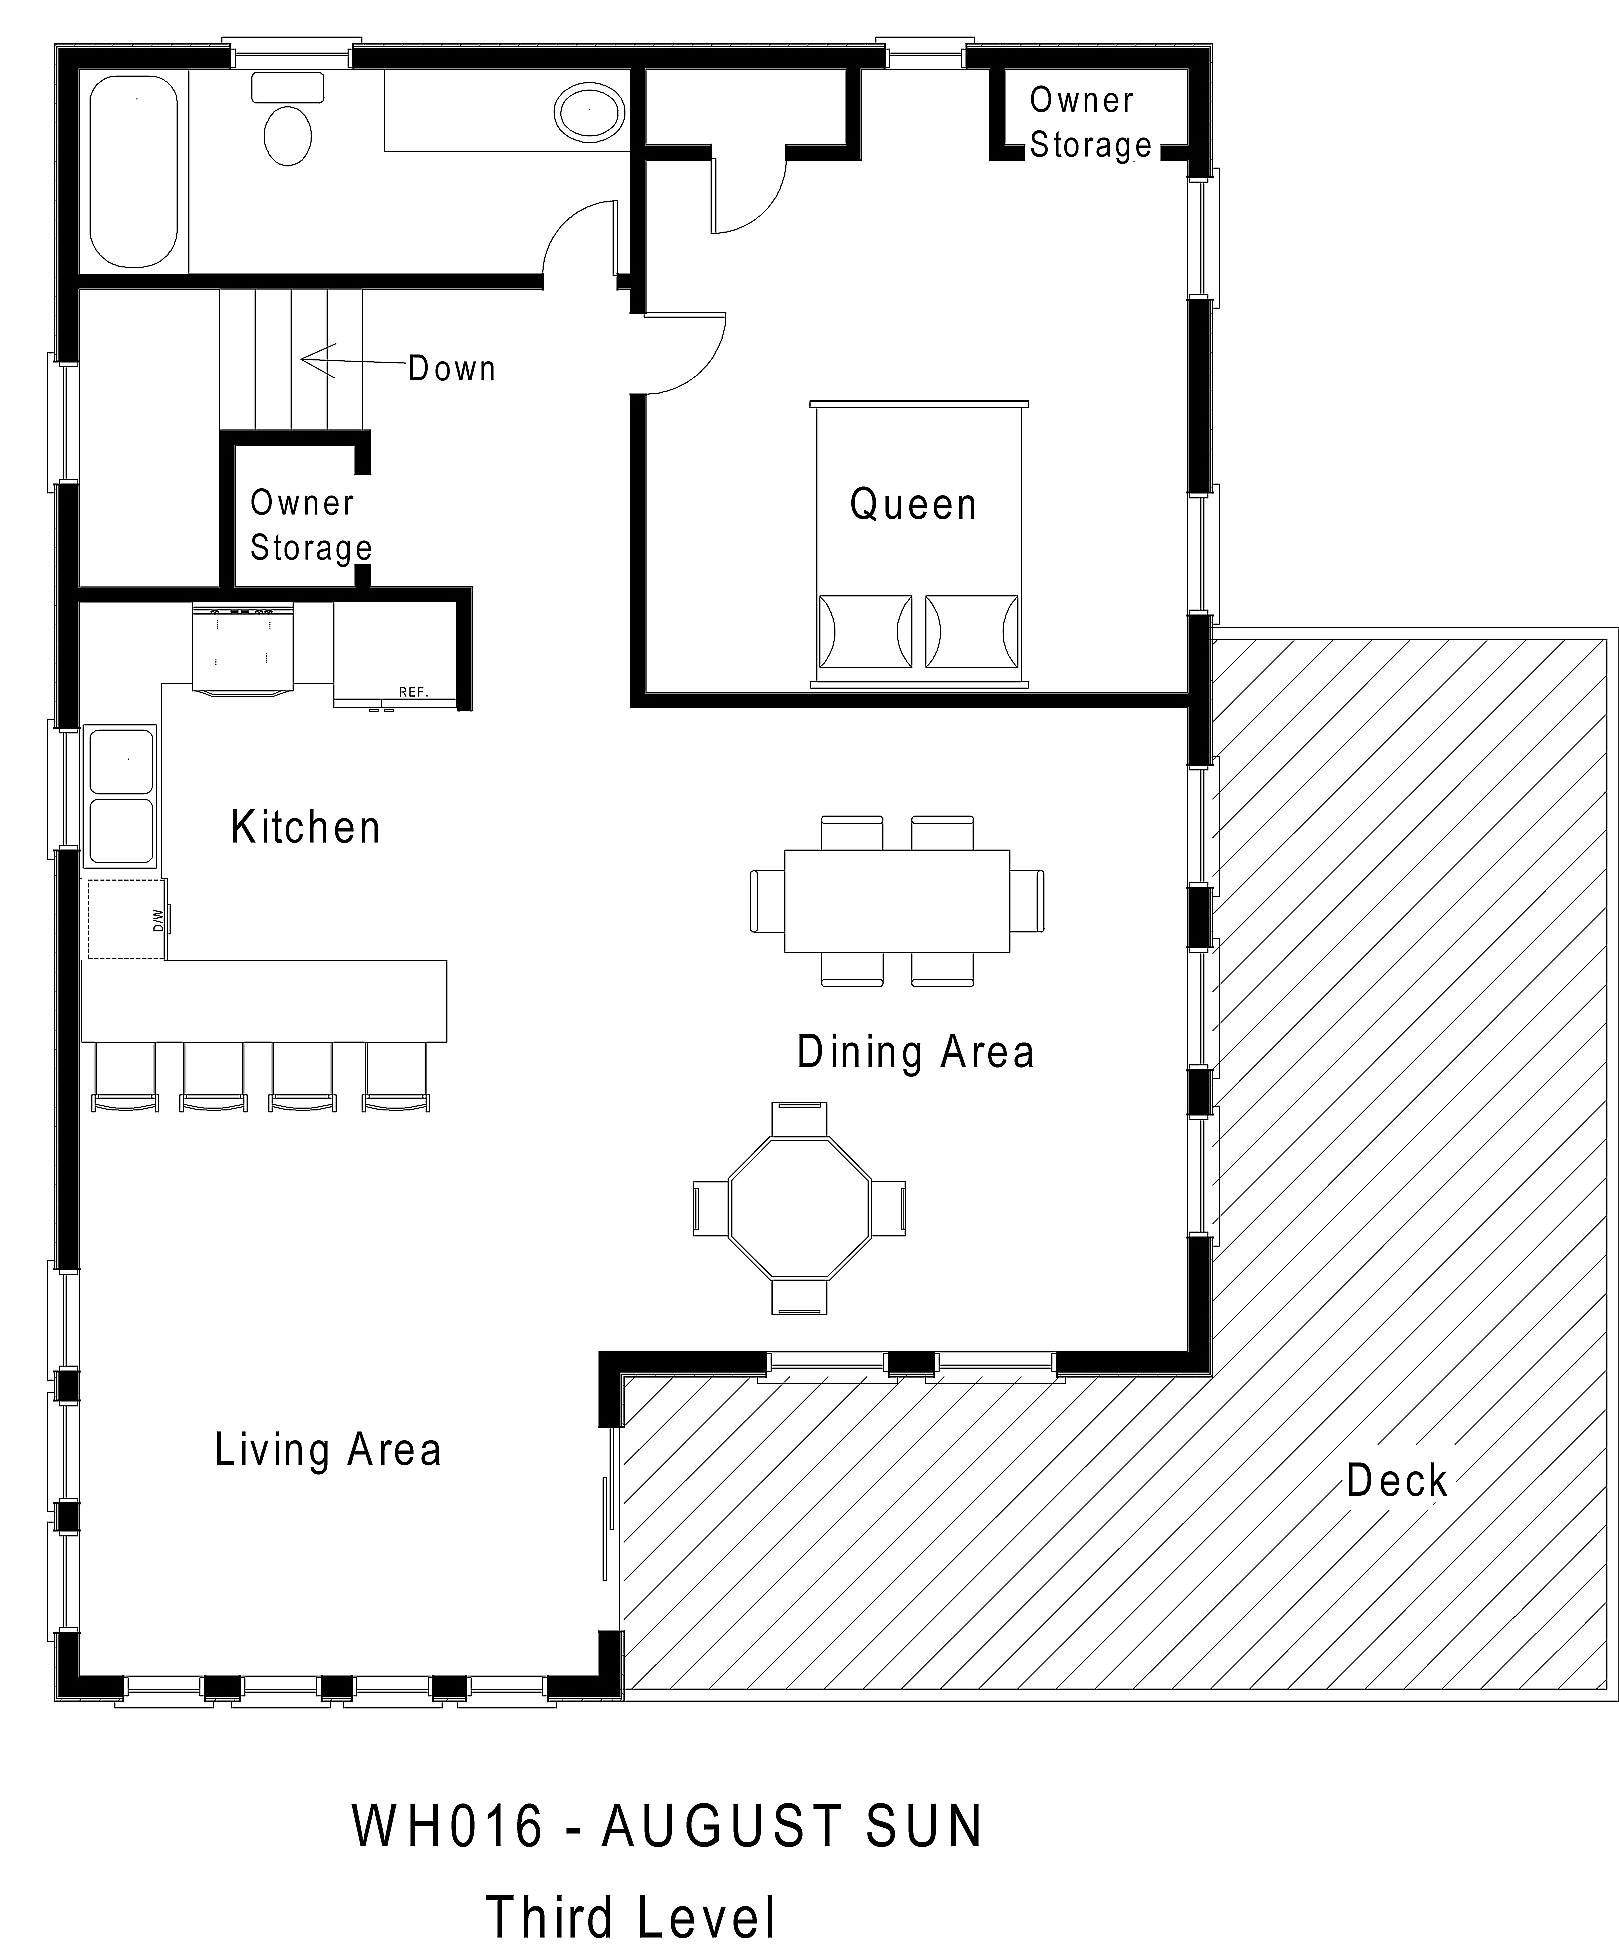 WH016 August Sun - Floorplan Level 3